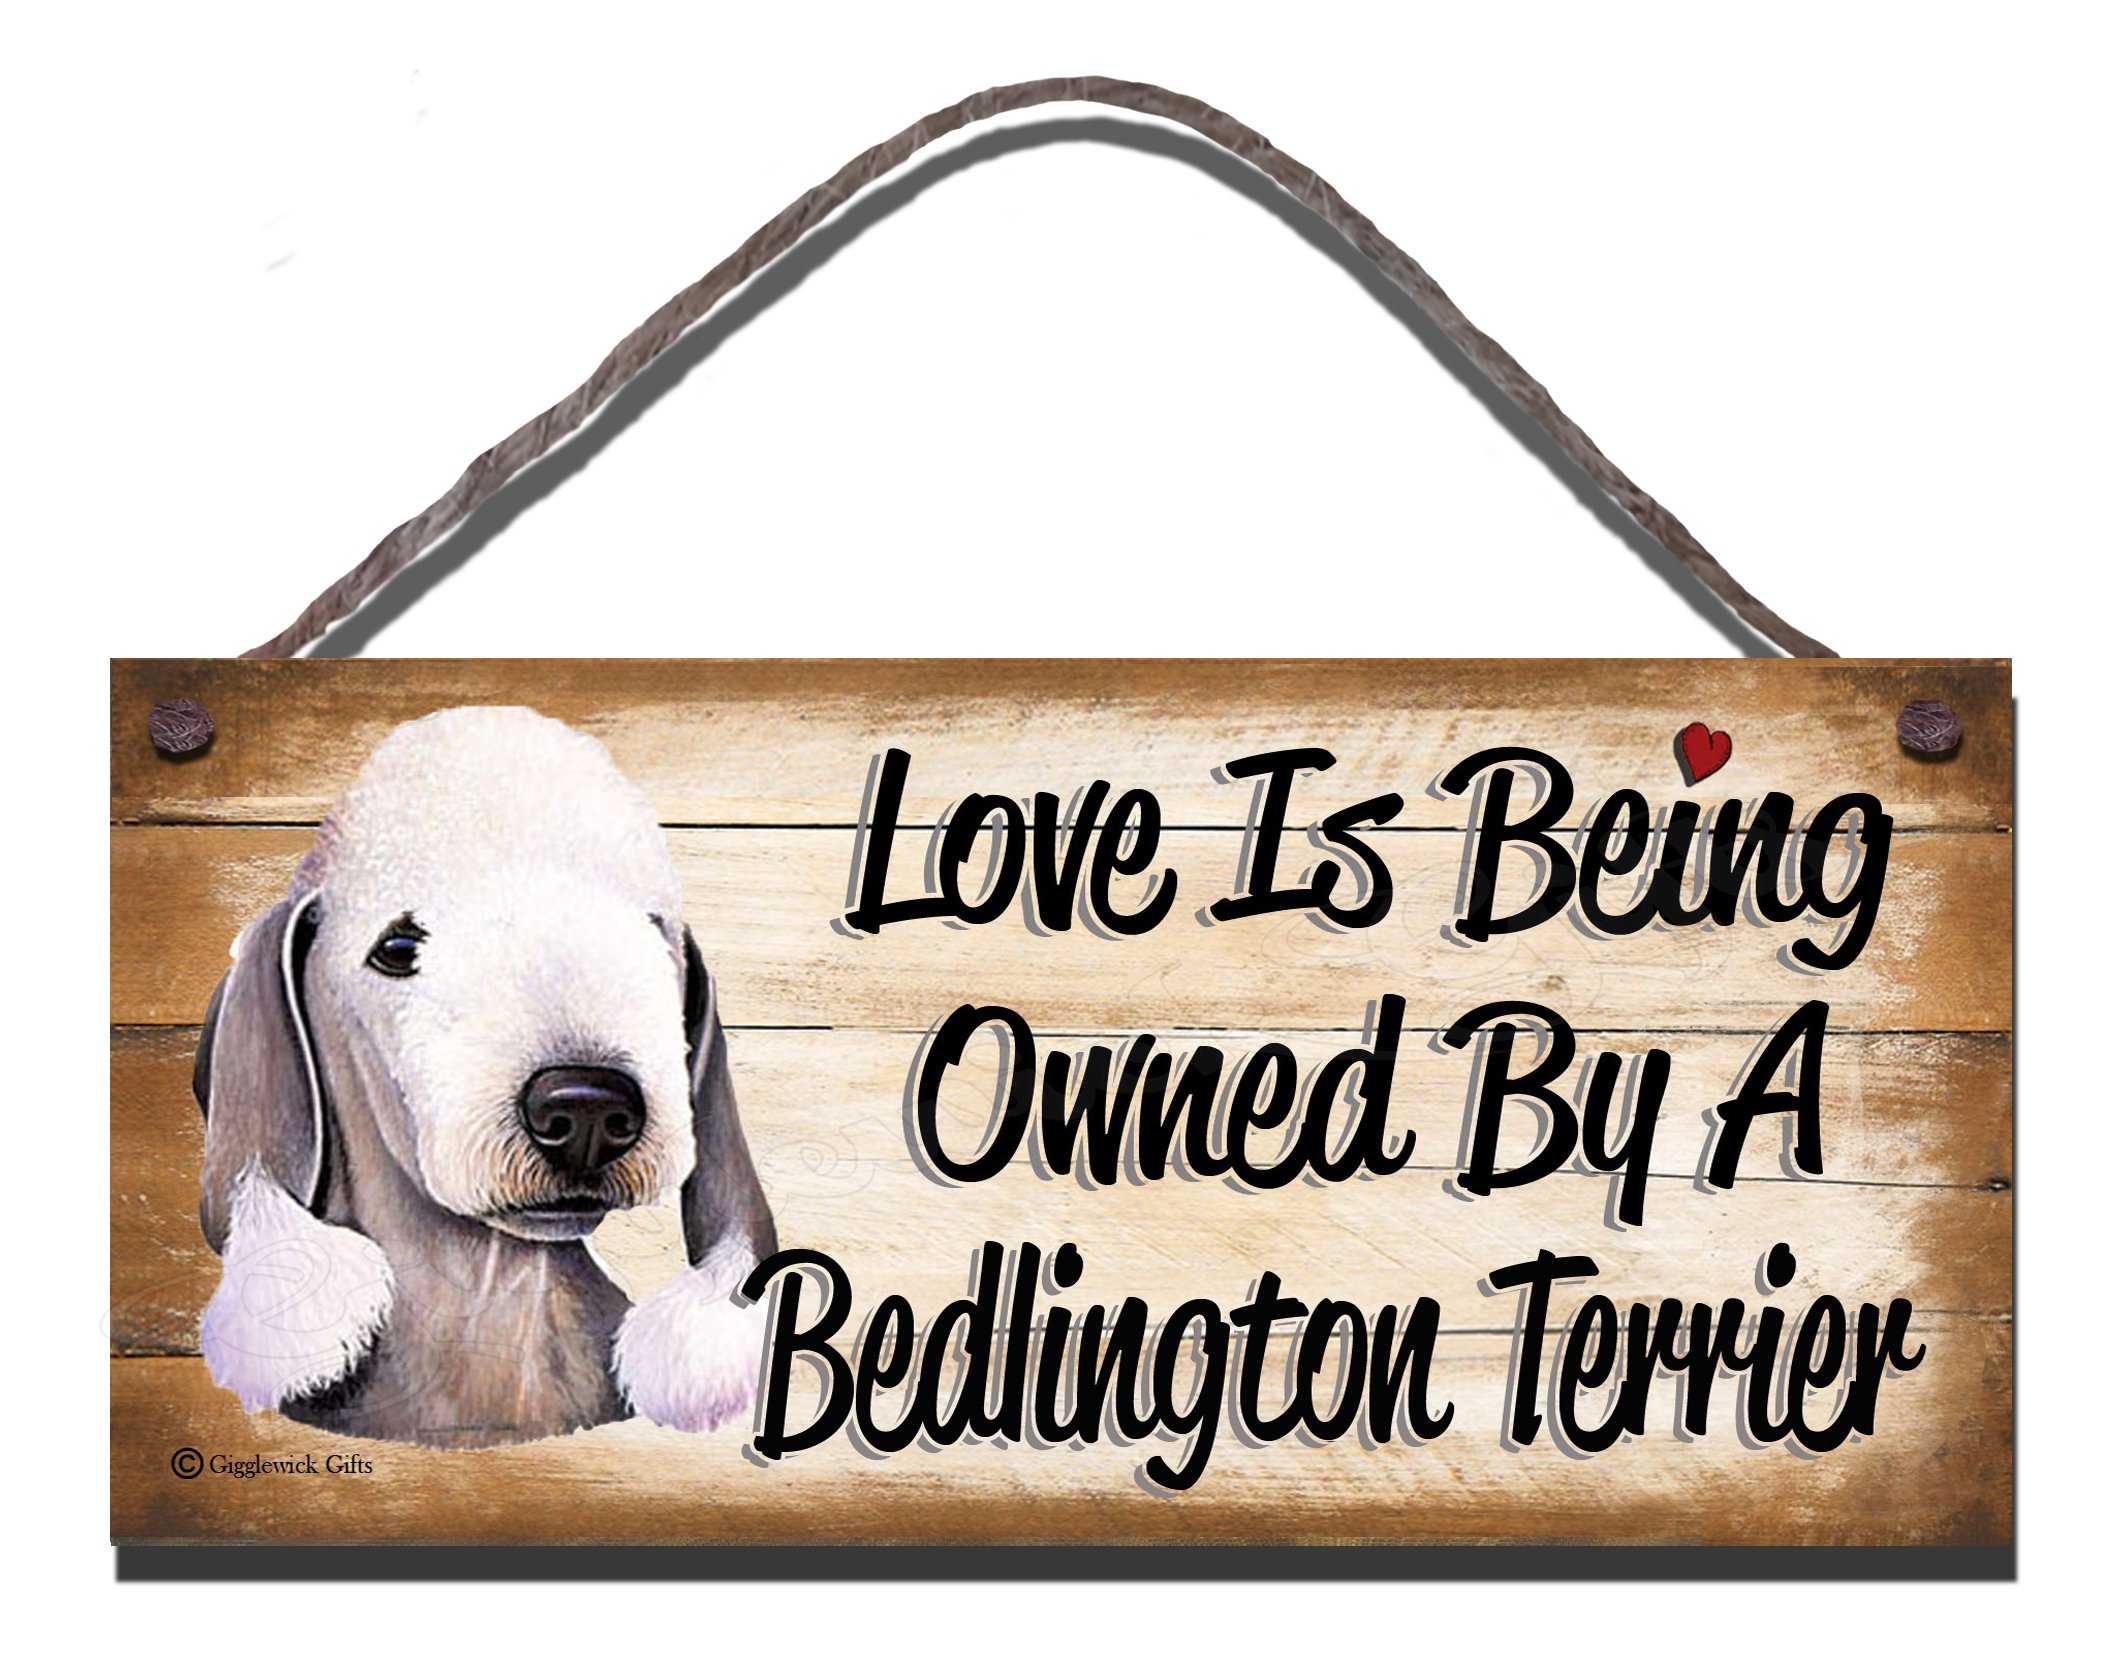 Birthday Occasion Bedlington Terrier Wooden Funny Sign Wall Plaque Gift Present Love is Being Owned by A Bedlington Terrier